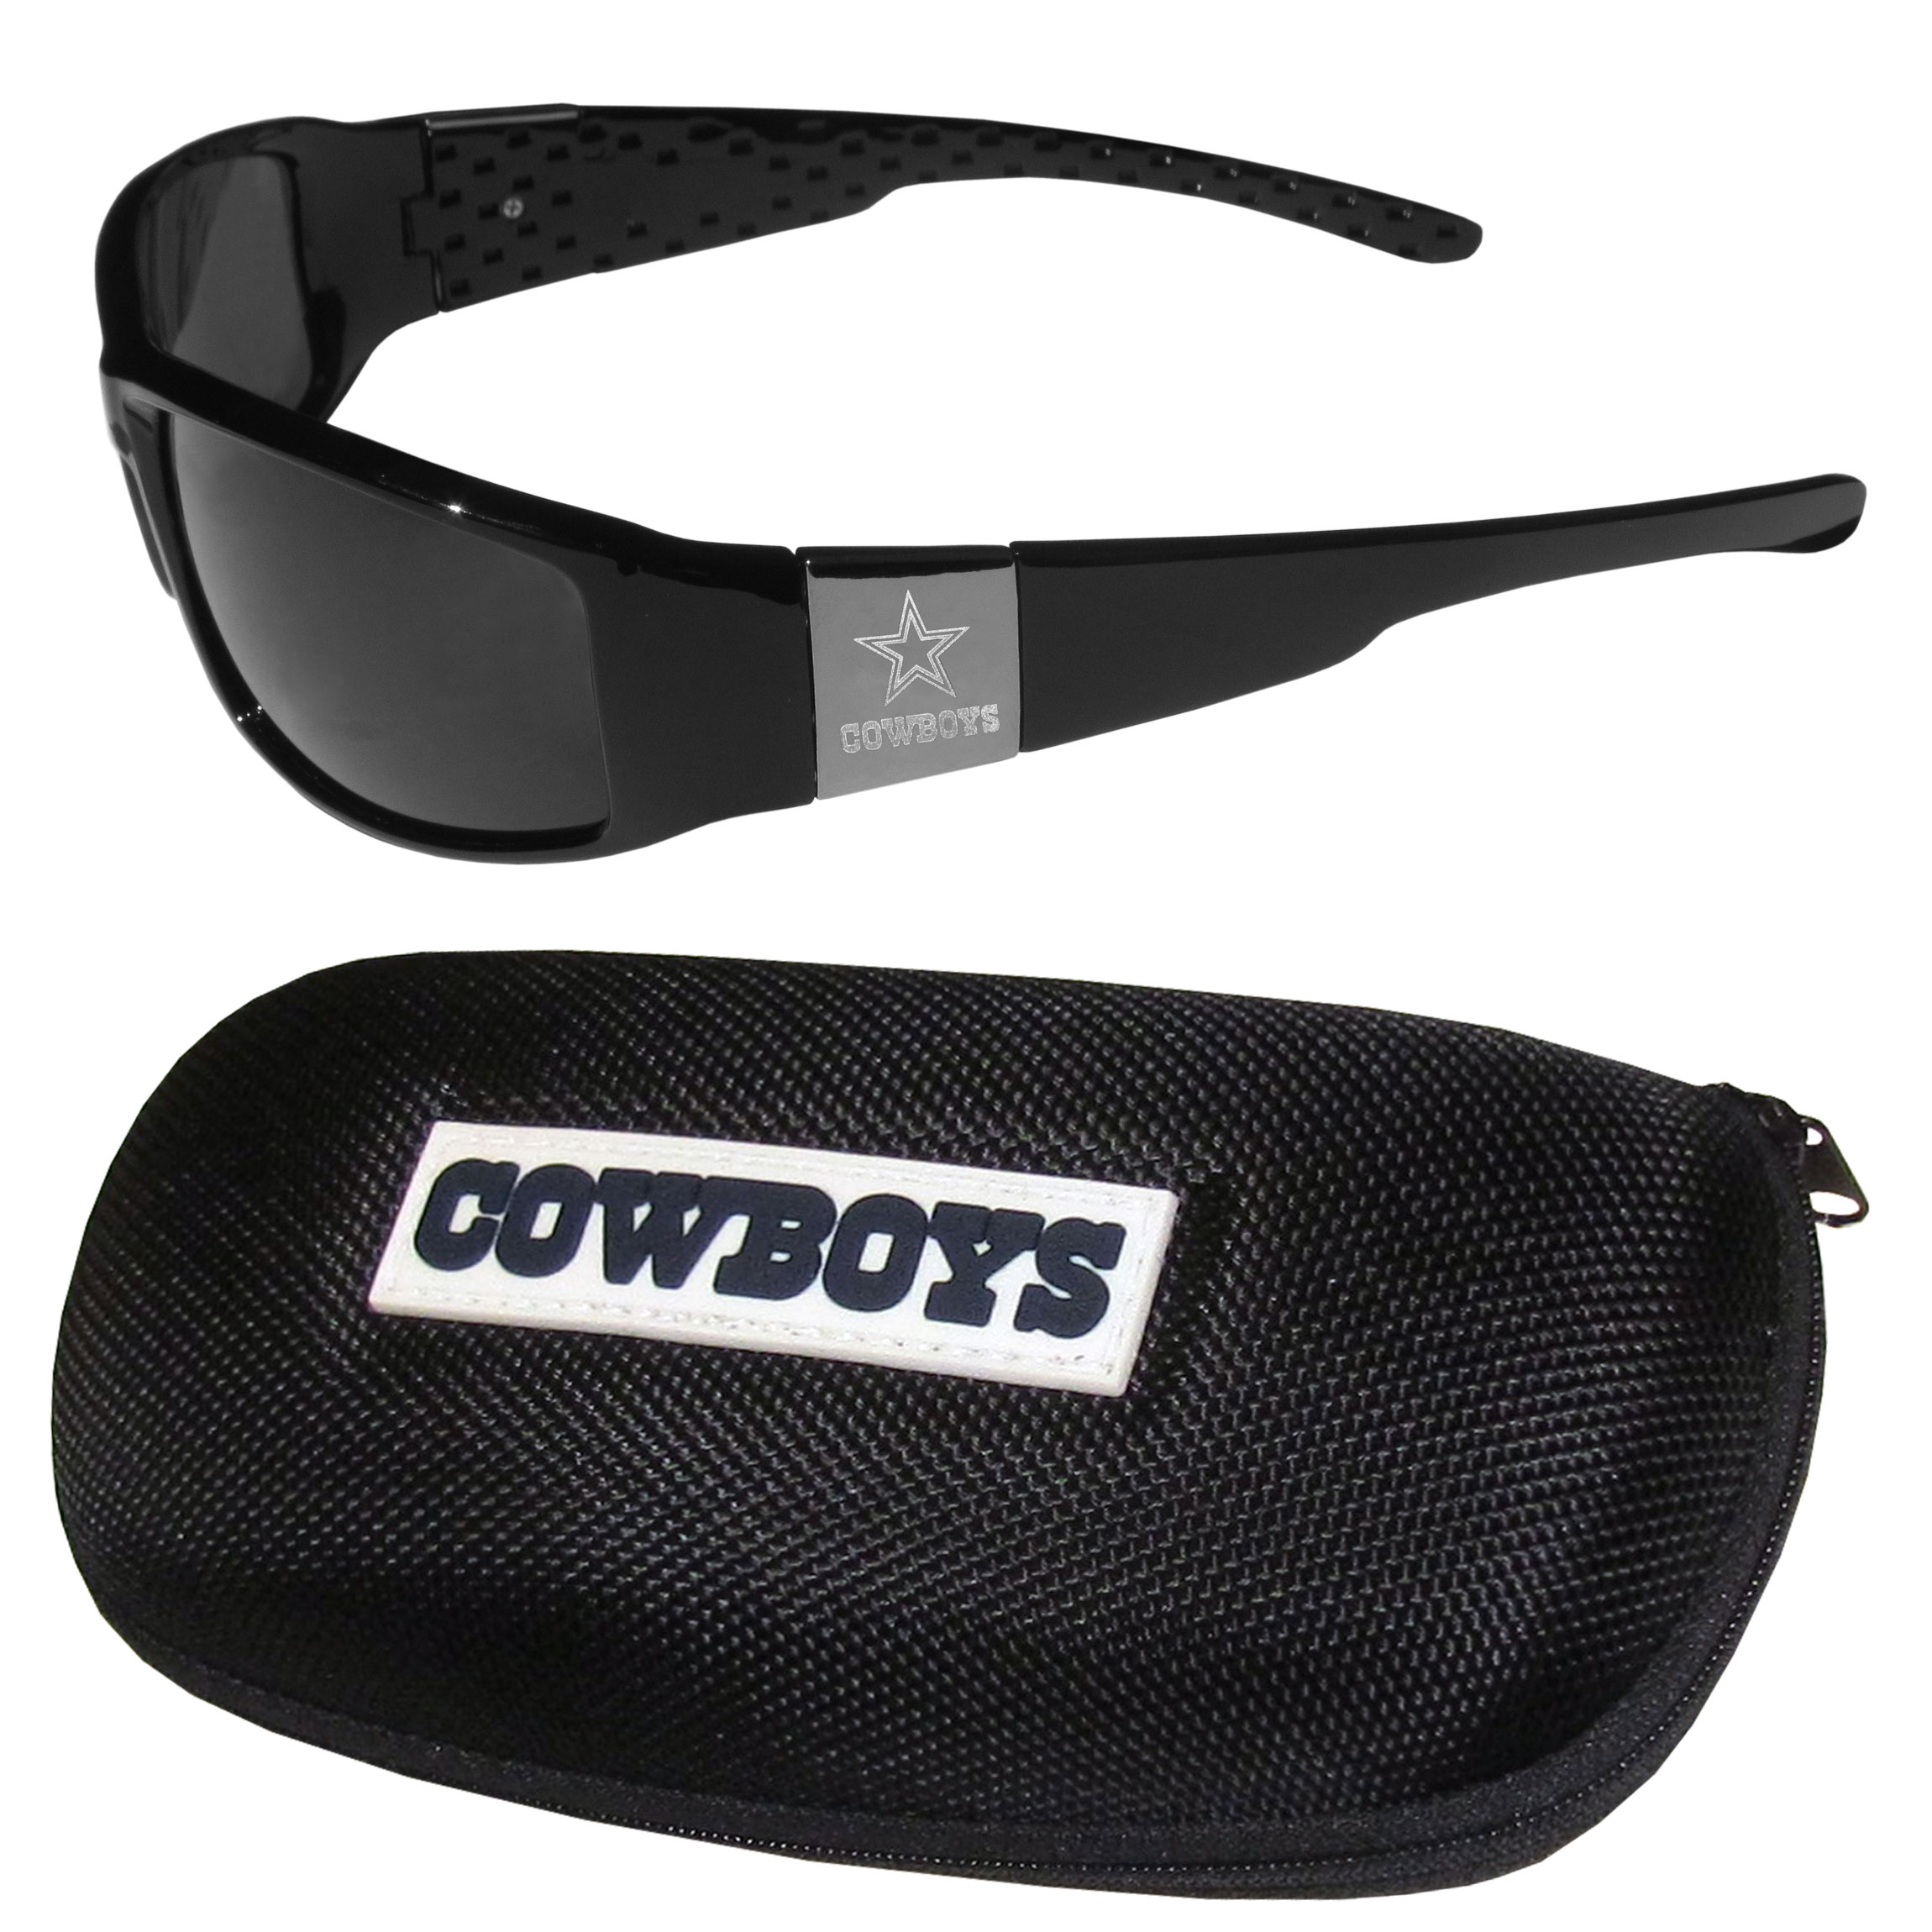 Dallas Cowboys Chrome Wrap Sunglasses and Zippered Carrying Case - This set includes our sleek and stylish Dallas Cowboys chrome wrap sunglasses and our hard shell, zippered carrying case. The sunglasses feature etched team logos on each arm and 100% UVA/UVB protection. The case features a large and colorful team emblem.